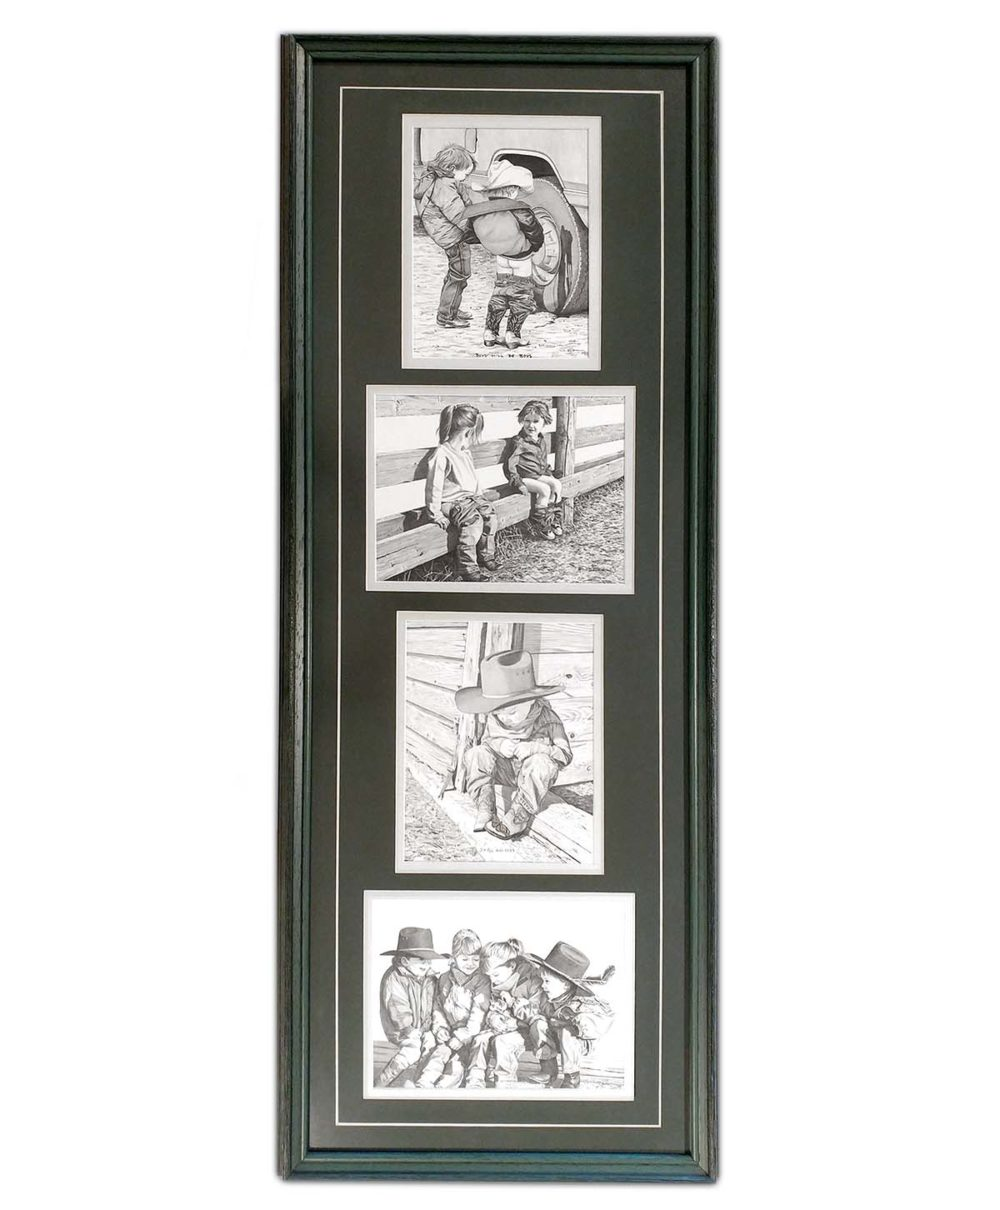 Set of 4 Framed Black and White Prints of Children - Bernie Brown